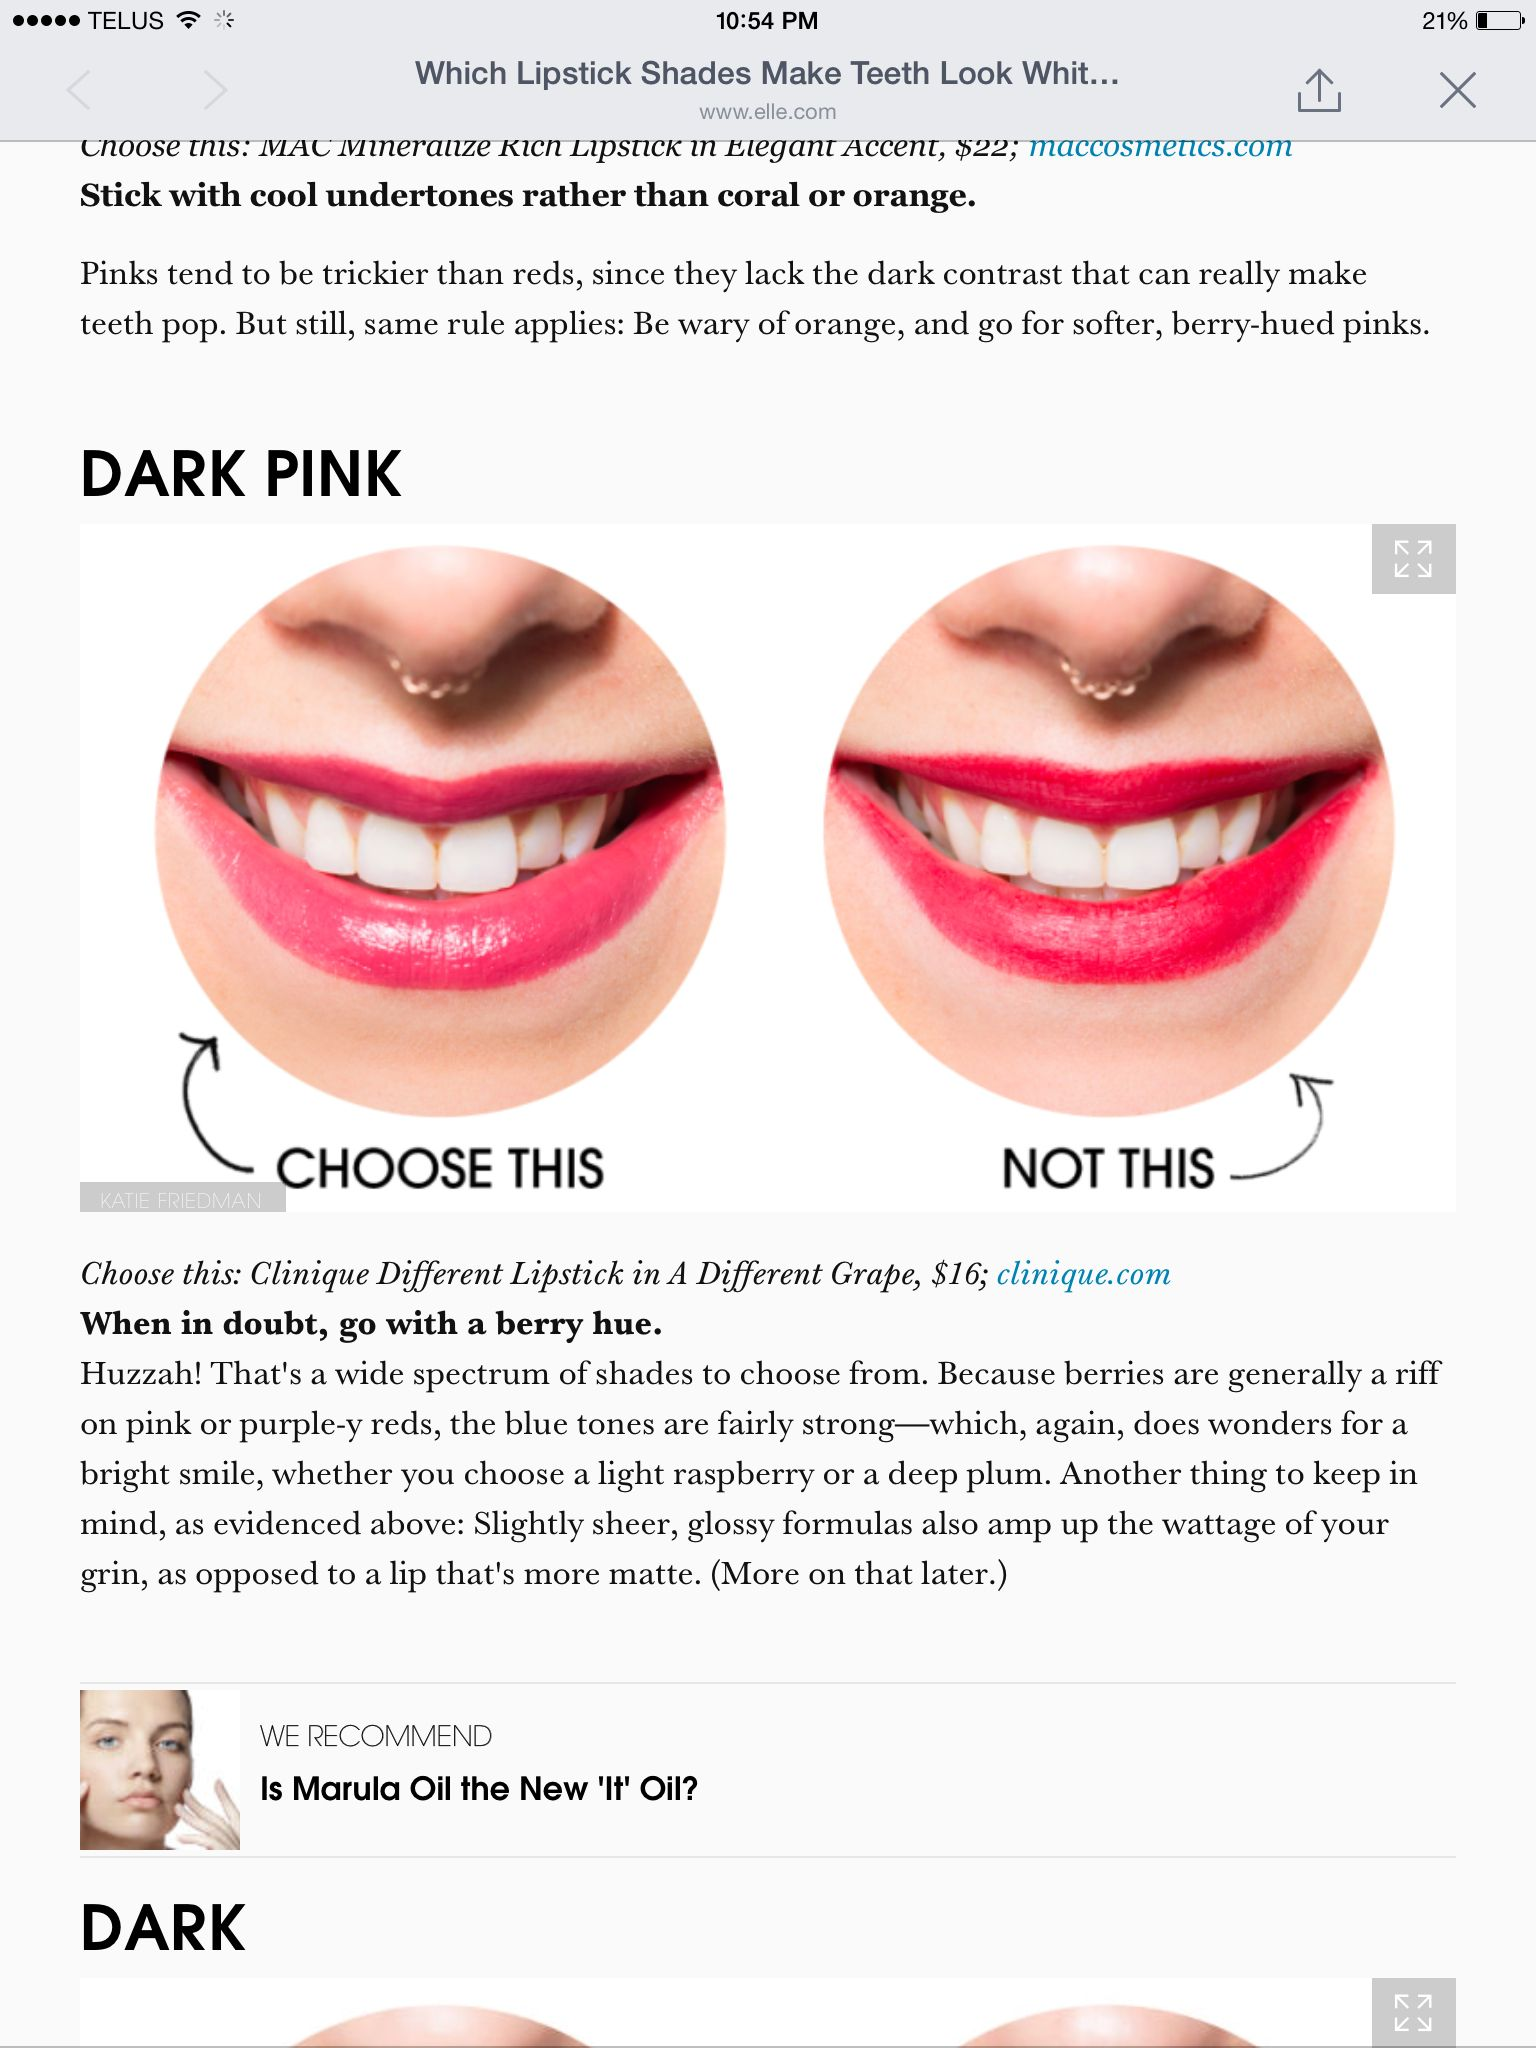 The right pink lipstick for white teeth Cool undertones